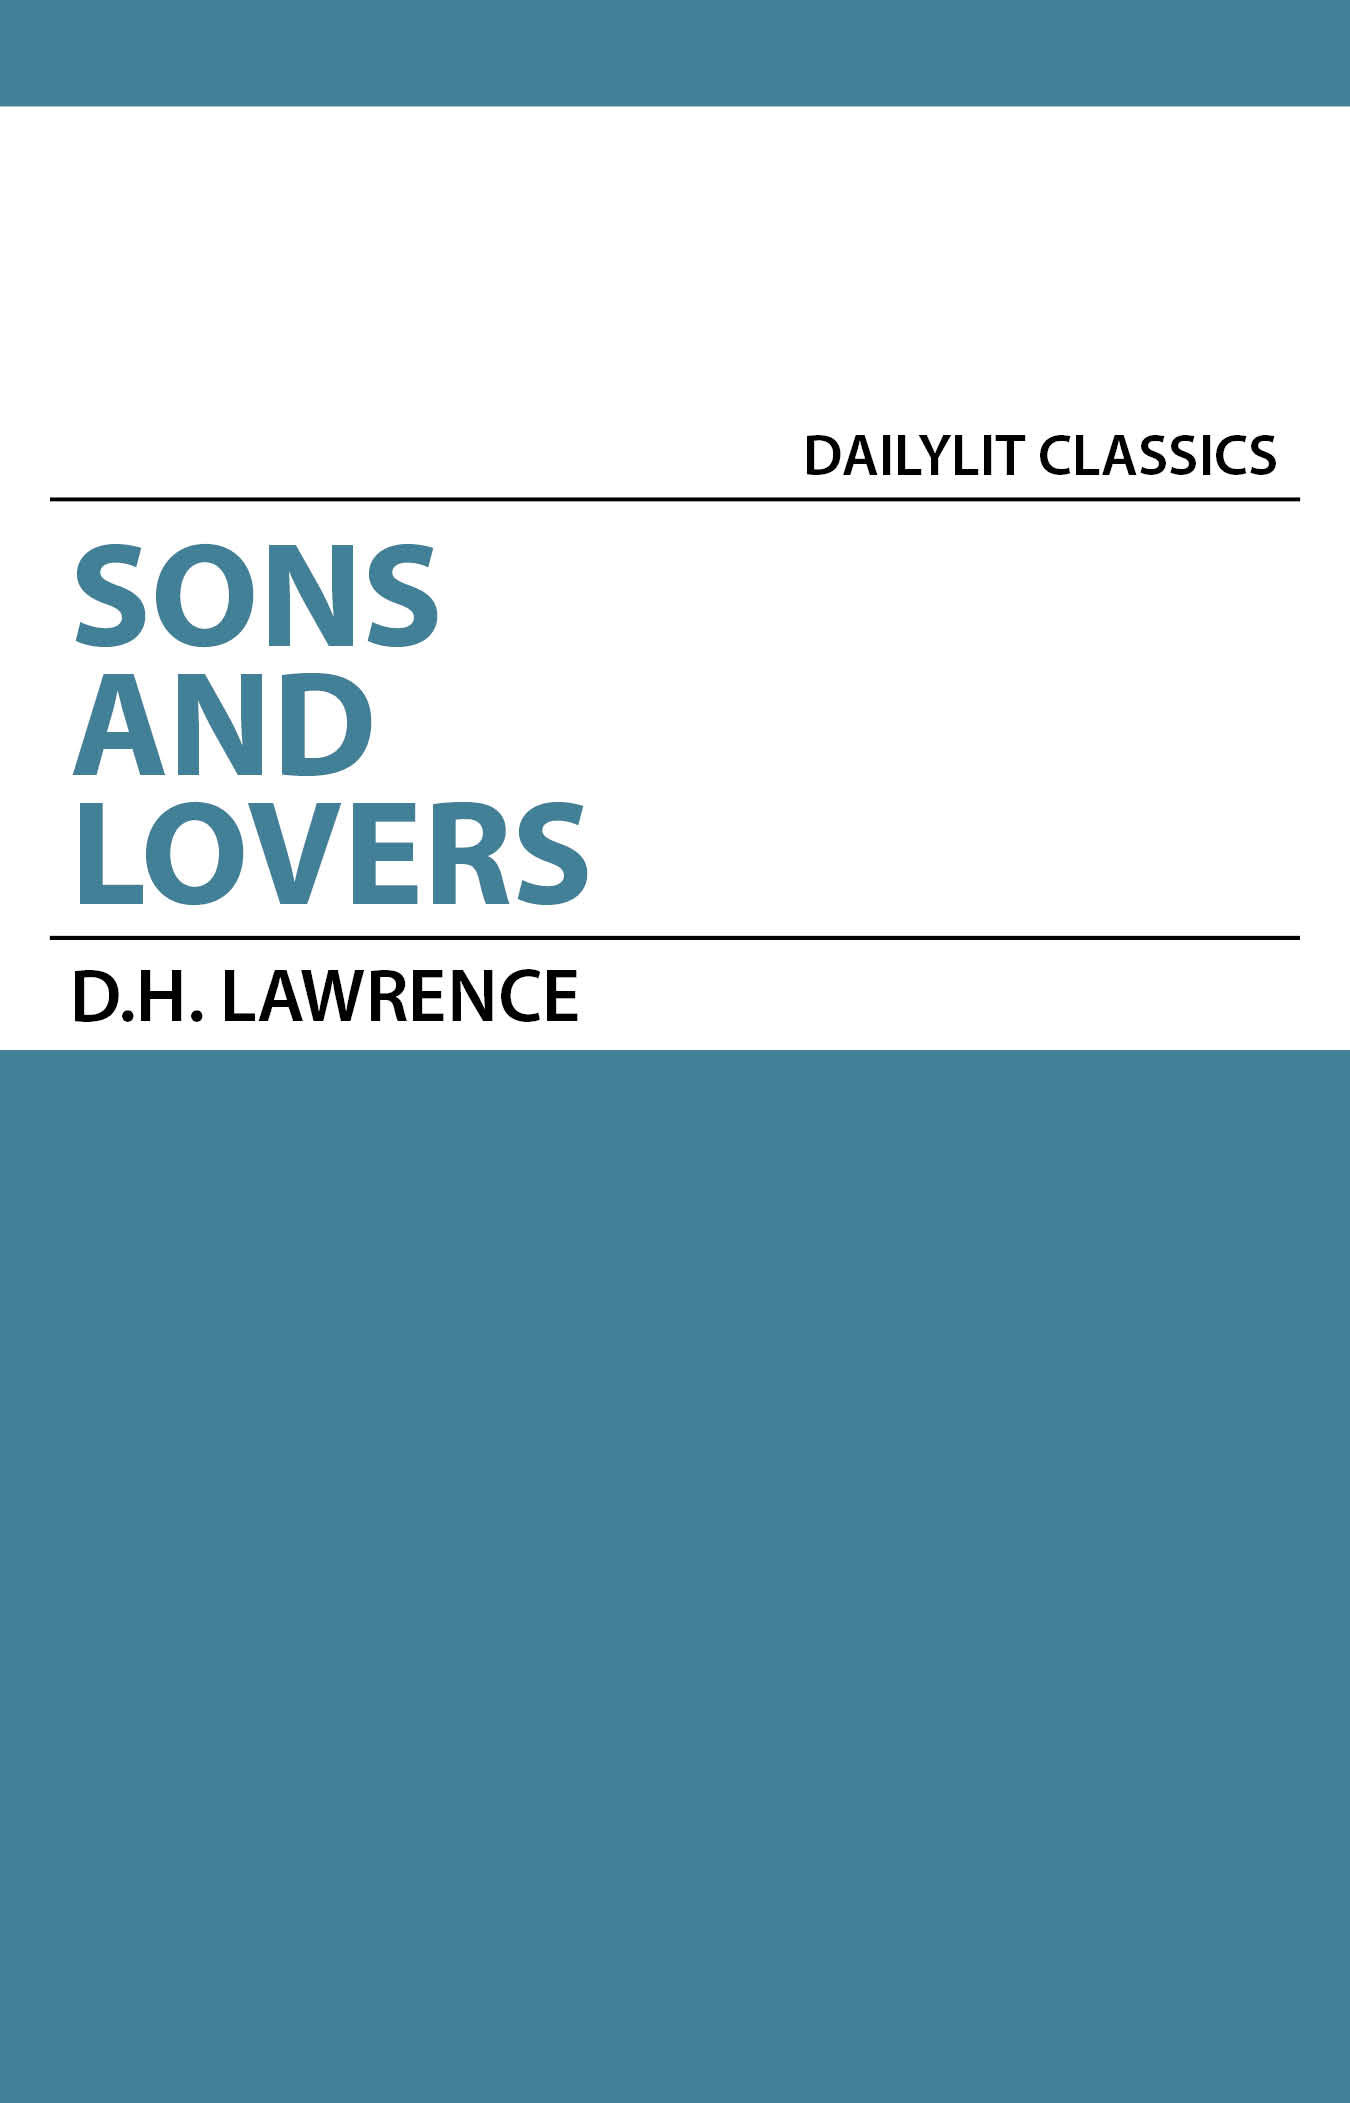 an analysis of the novels sons and lovers and women in love by d h lawrence Women in love dh lawrence limited preview - 2015 particularly italy, where he wrote some of his most significant and most controversial novels, including sons and lovers and lady chatterly's lover lawrence and his wife, frieda.